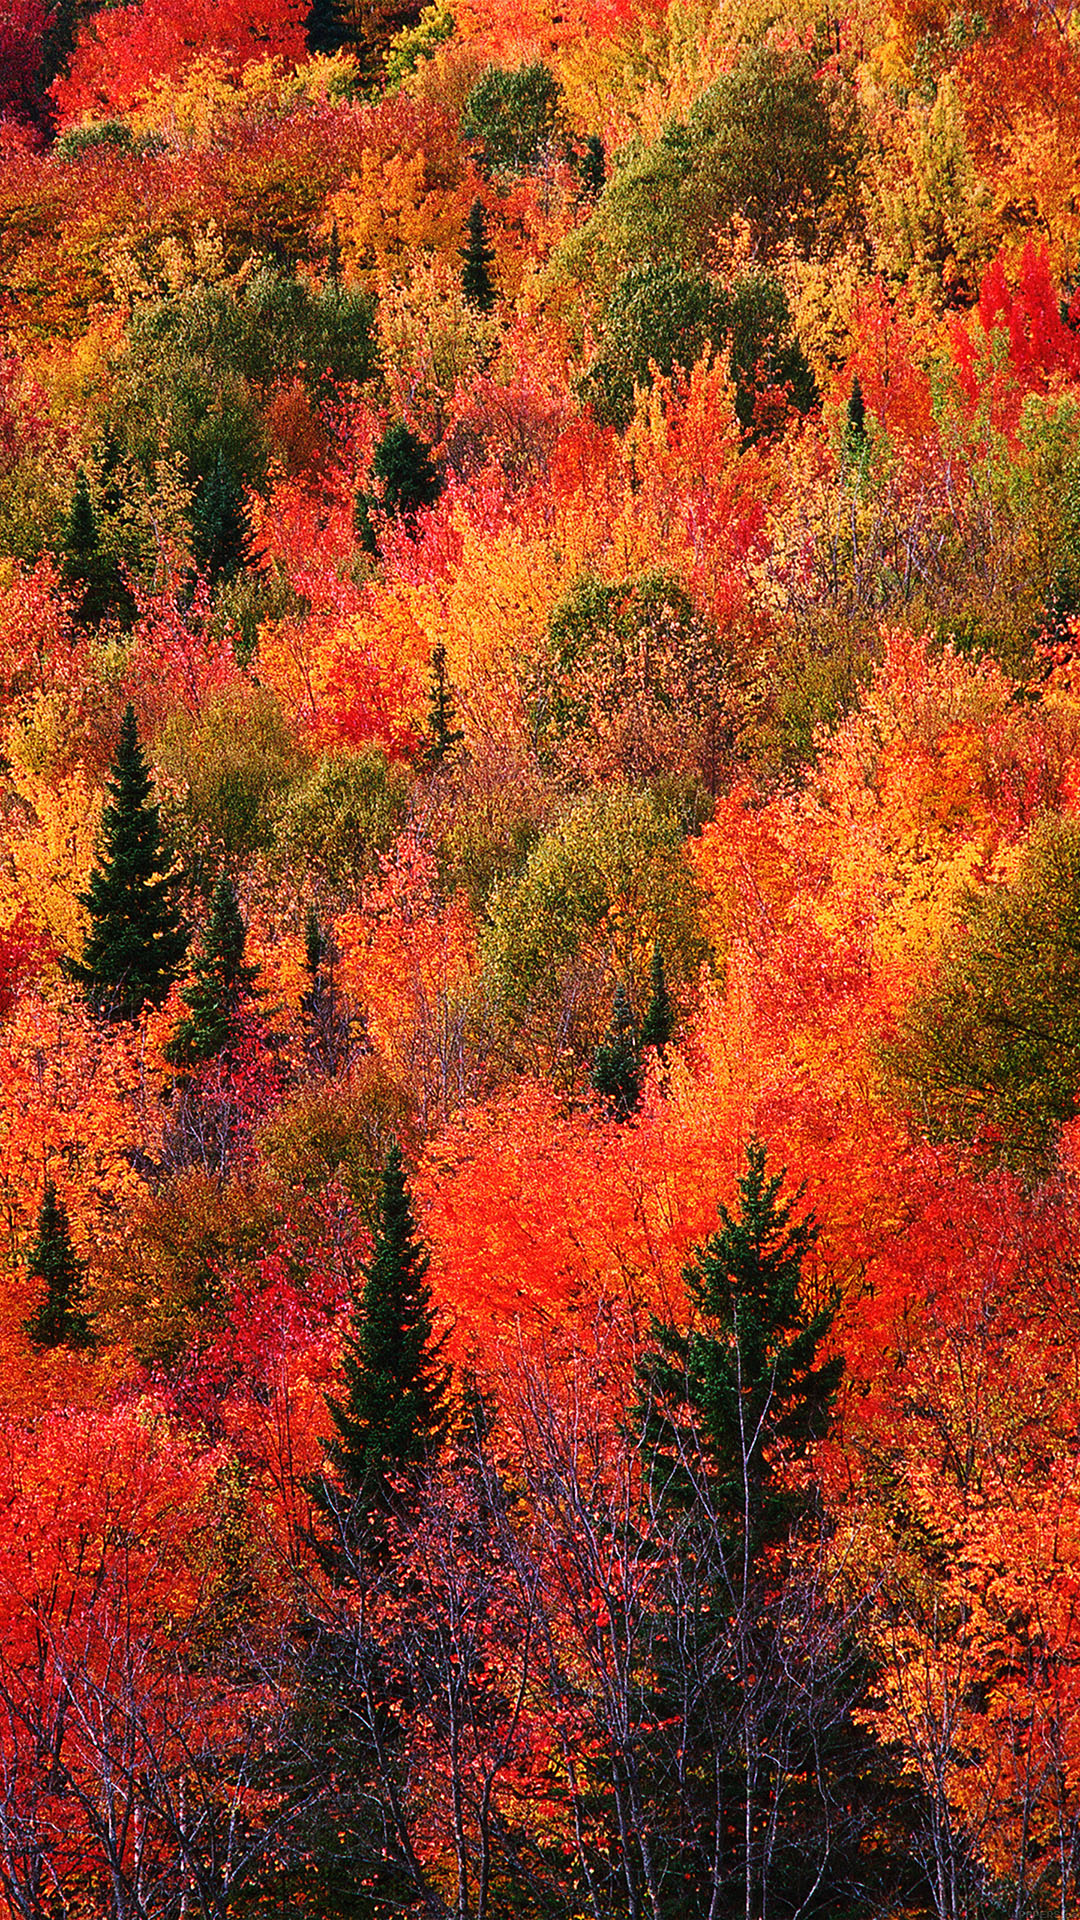 Autumn Falling Leaves Live Wallpaper Colorful Fall Wallpapers Of The Week